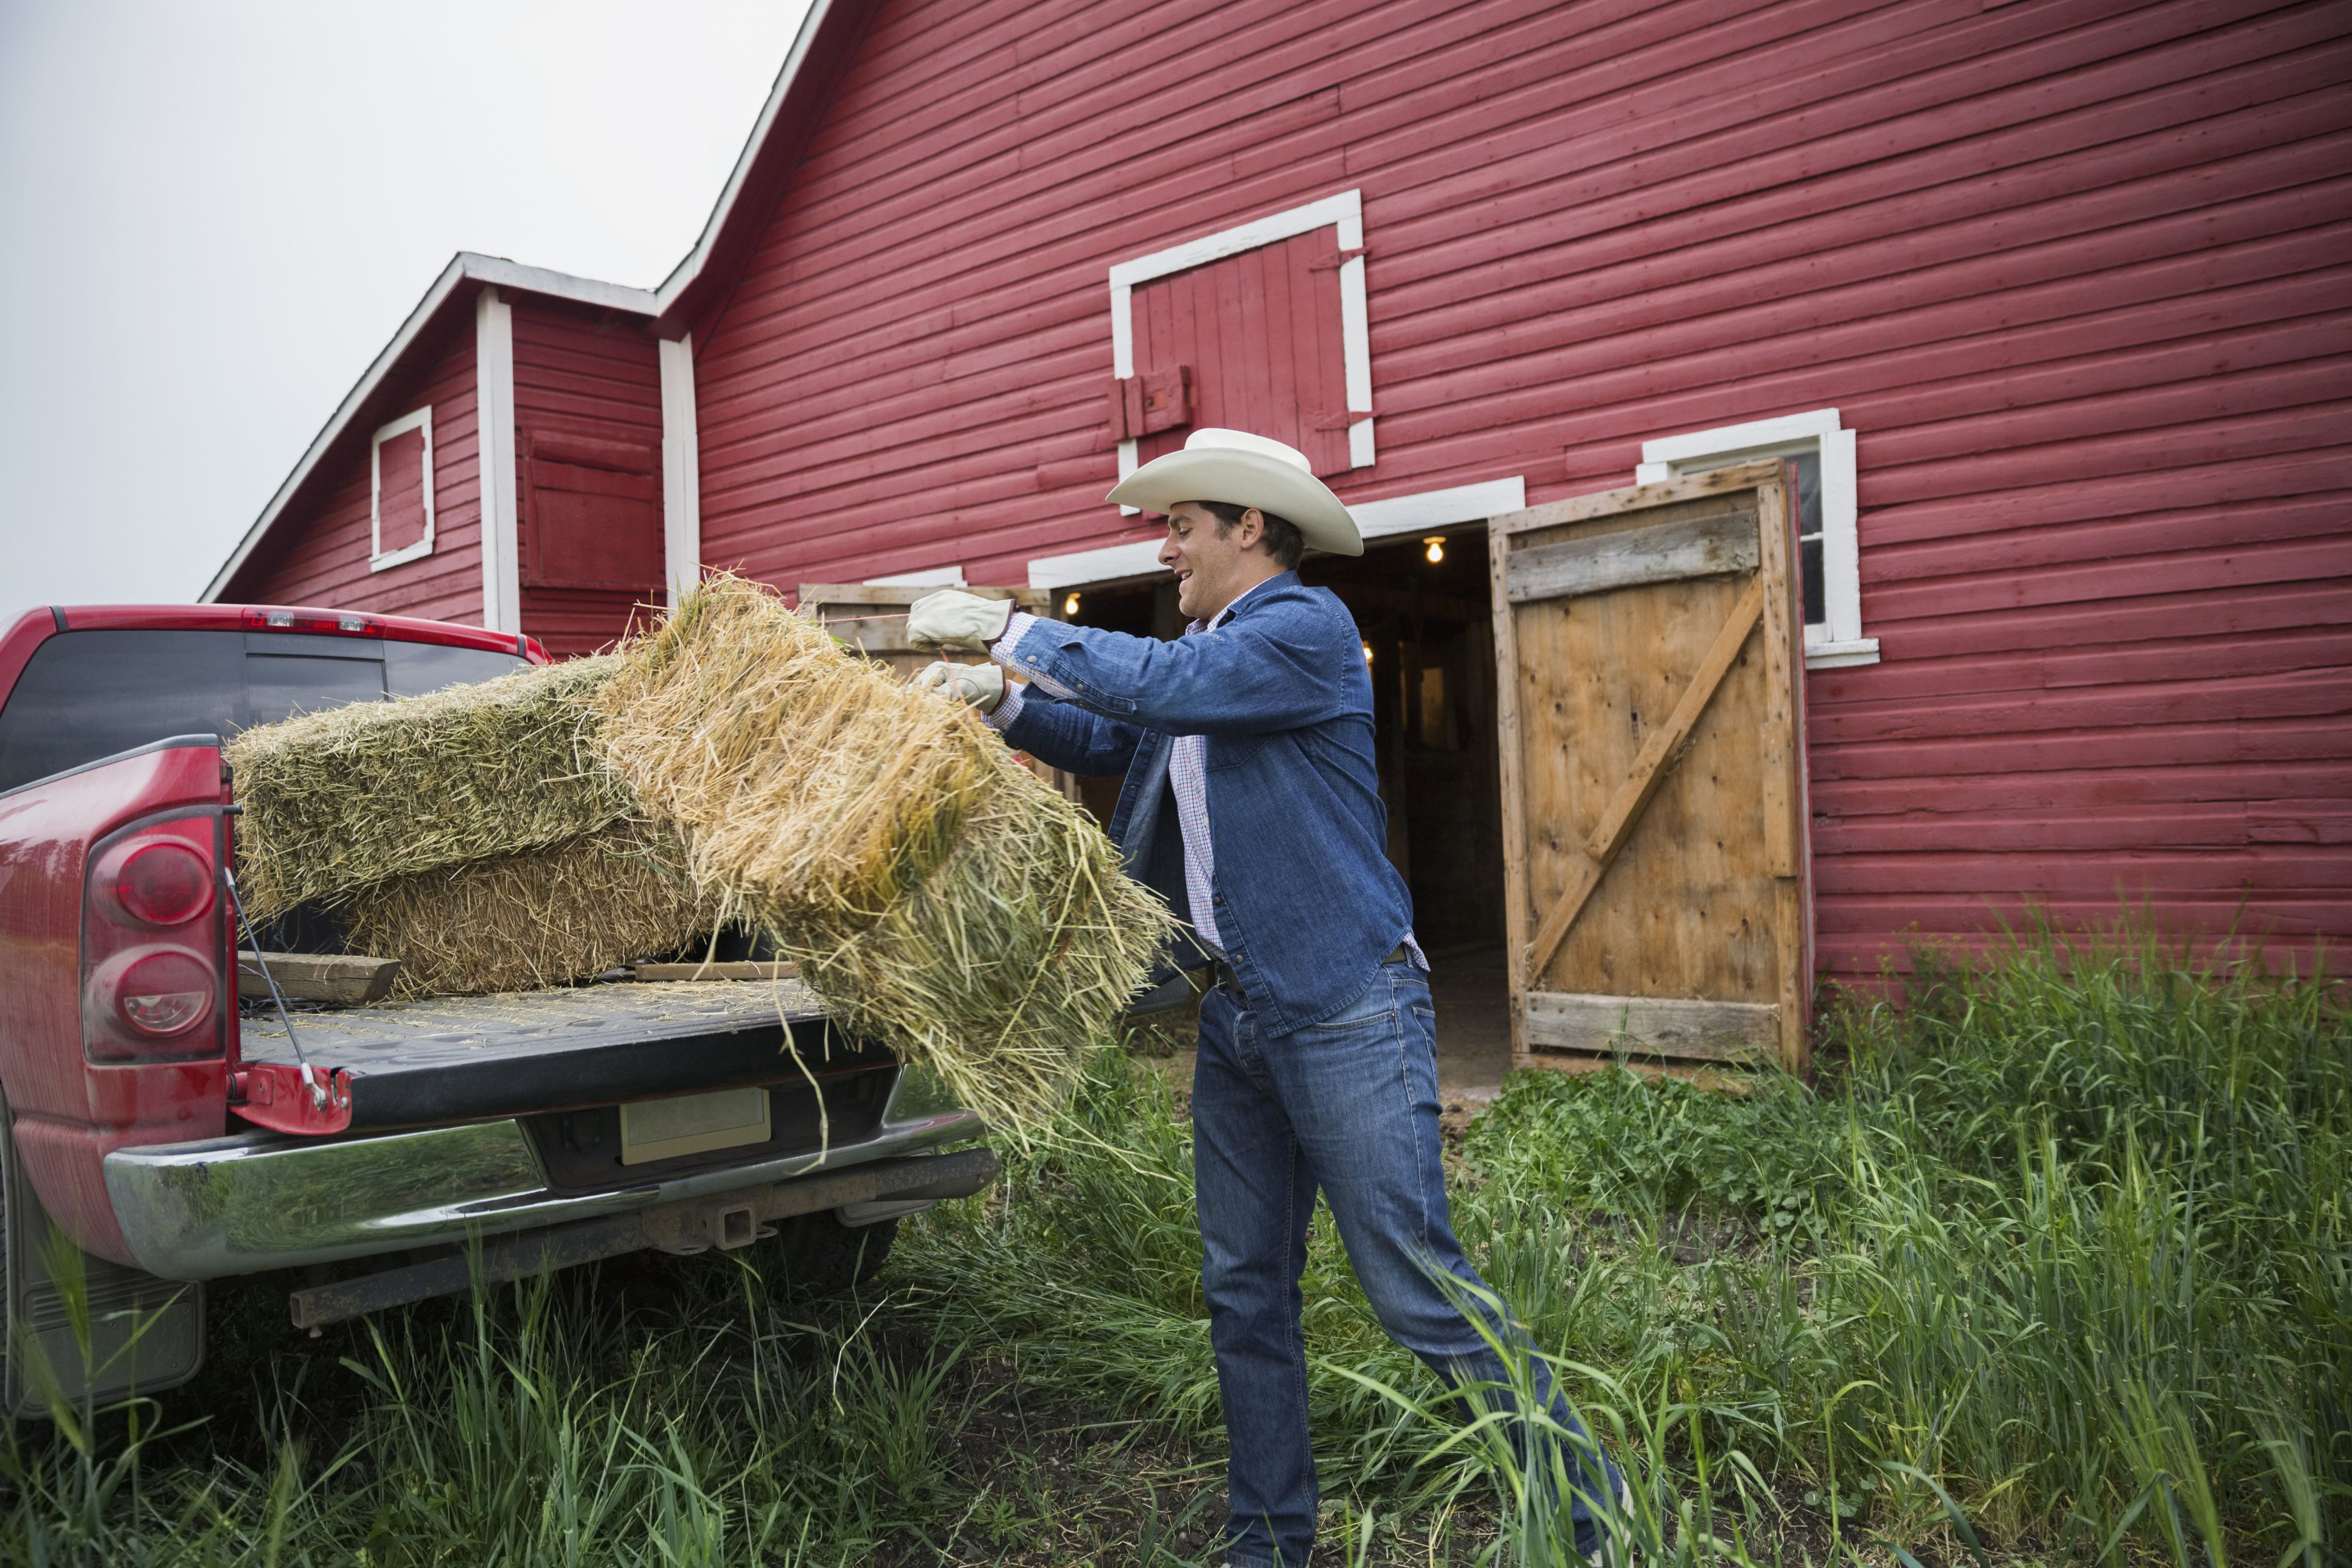 Man lifting hay bale out of truck